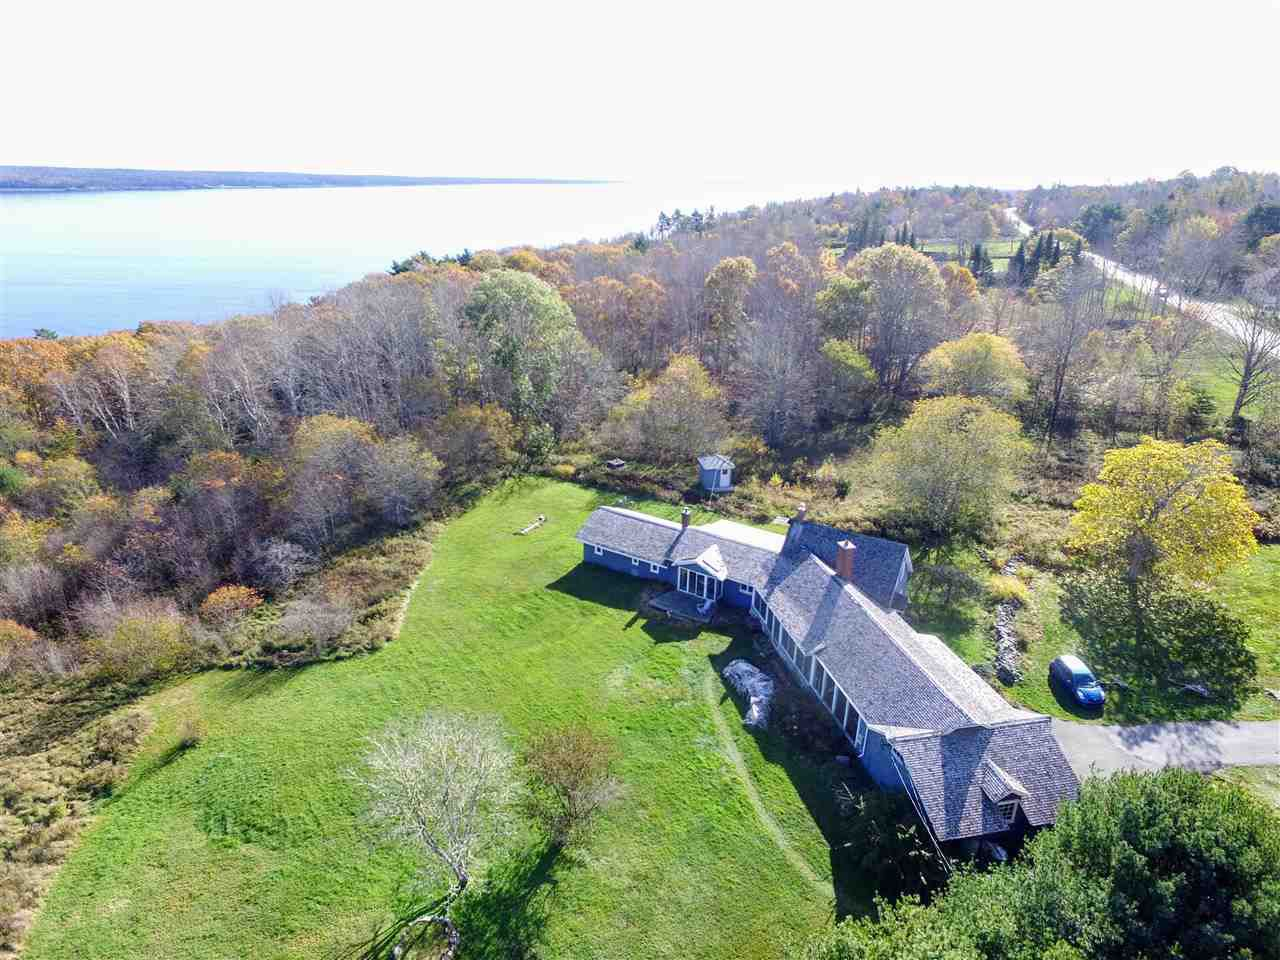 Photo 4: Photos: 5132 Sandy Point Road in Jordan Ferry: 407-Shelburne County Residential for sale (South Shore)  : MLS®# 201719775